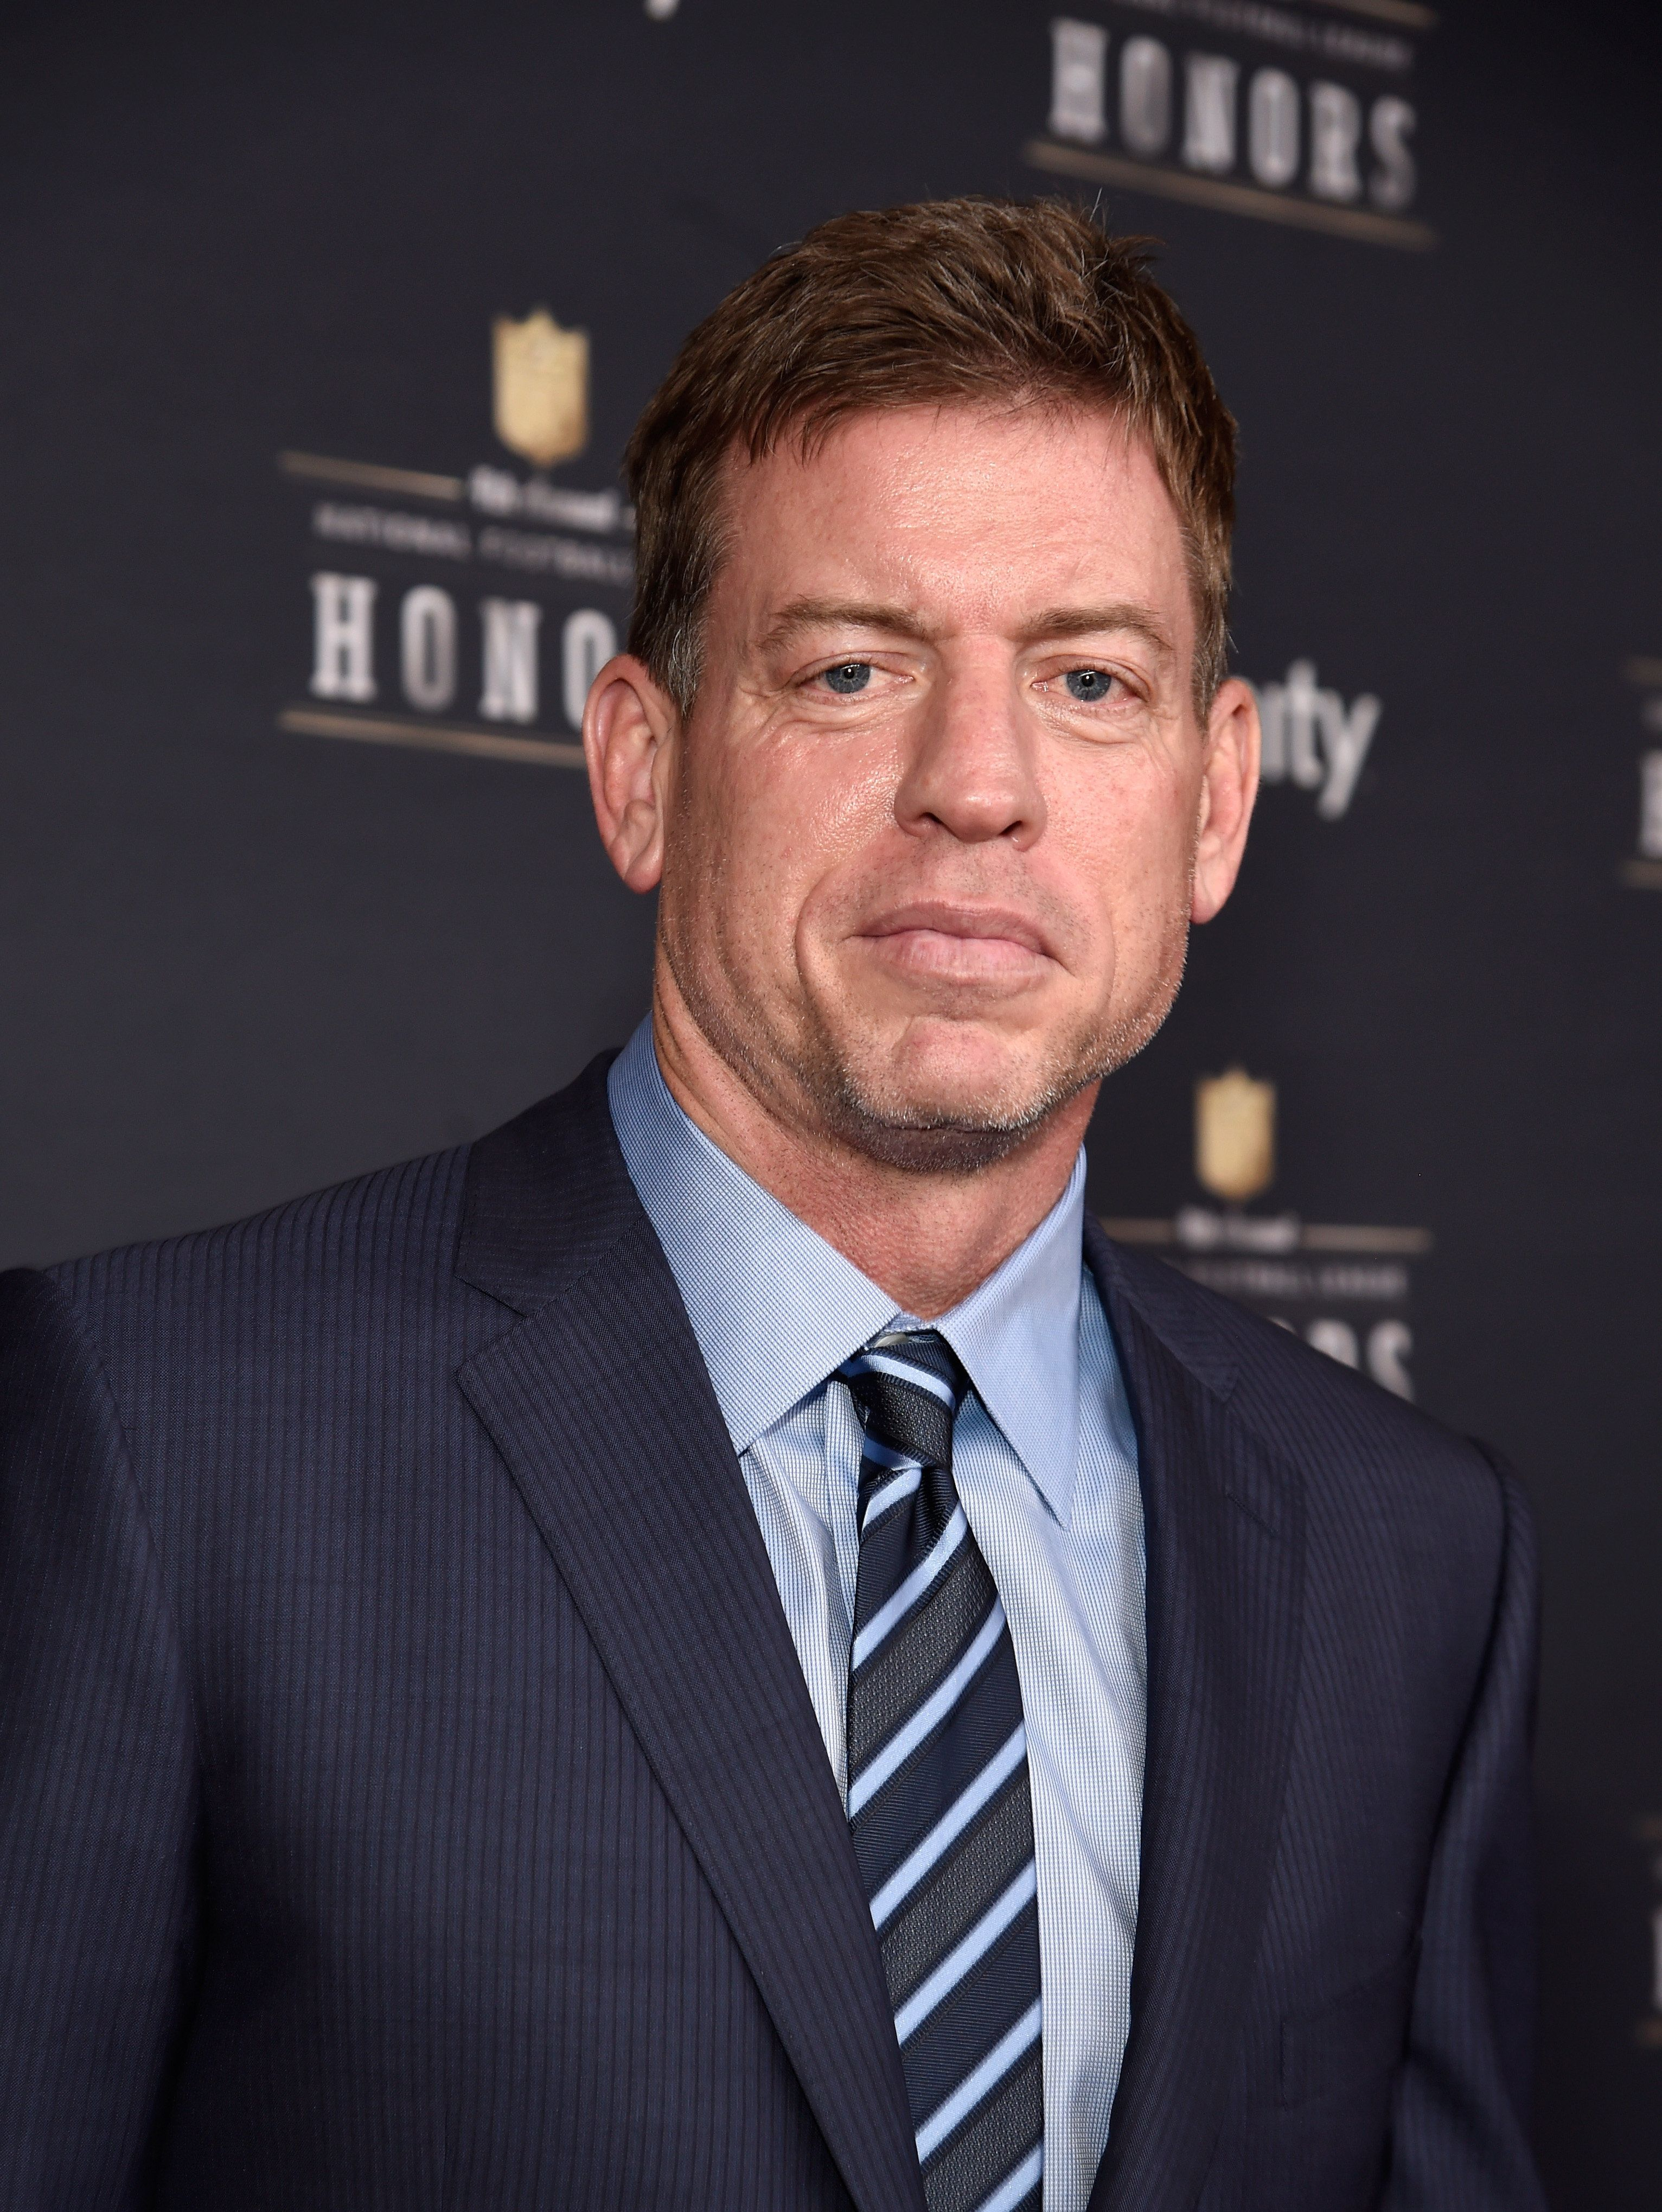 PHOENIX, AZ - JANUARY 31:  Retired NFL player Troy Aikman attends 4th Annual NFL Honors at Phoenix Convention Center on January 31, 2015 in Phoenix, Arizona.  (Photo by Kevin Mazur/WireImage)